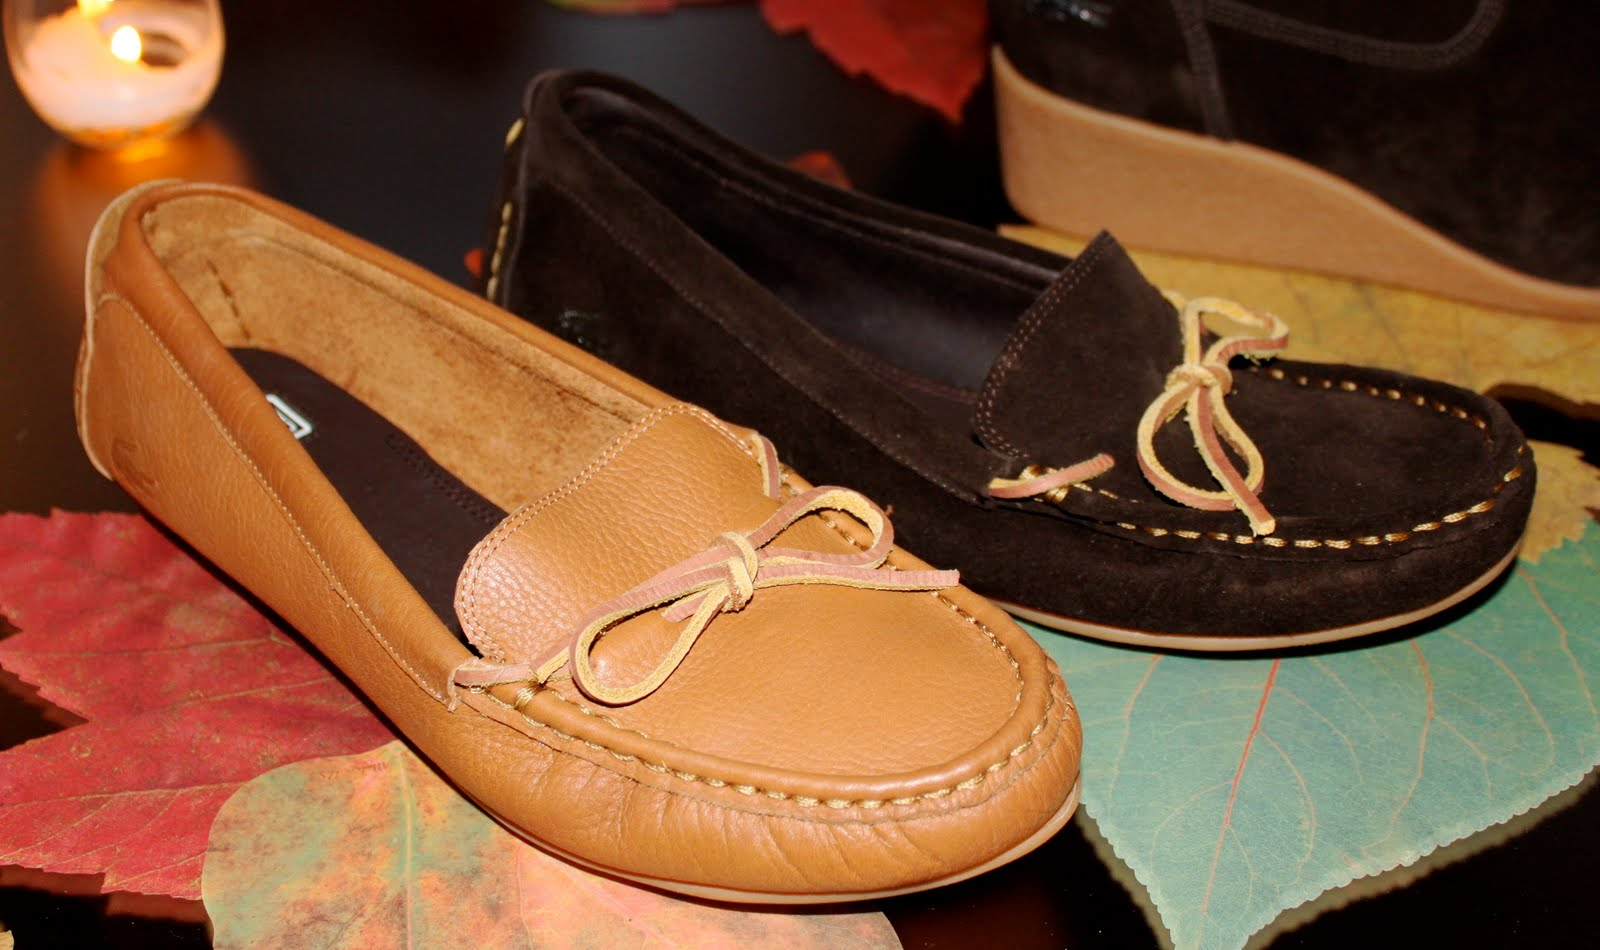 Lacoste Footwear Collection Press Preview Fall Winter 2010 Espro Napoly Genuine Leather Portofolio Bag Black This Style Also Comes In Dark Suede Shades As Well Yellow Niceand With Just A Hint Of Heelwe Think These Basic Flats Should Give The Ubiquitous